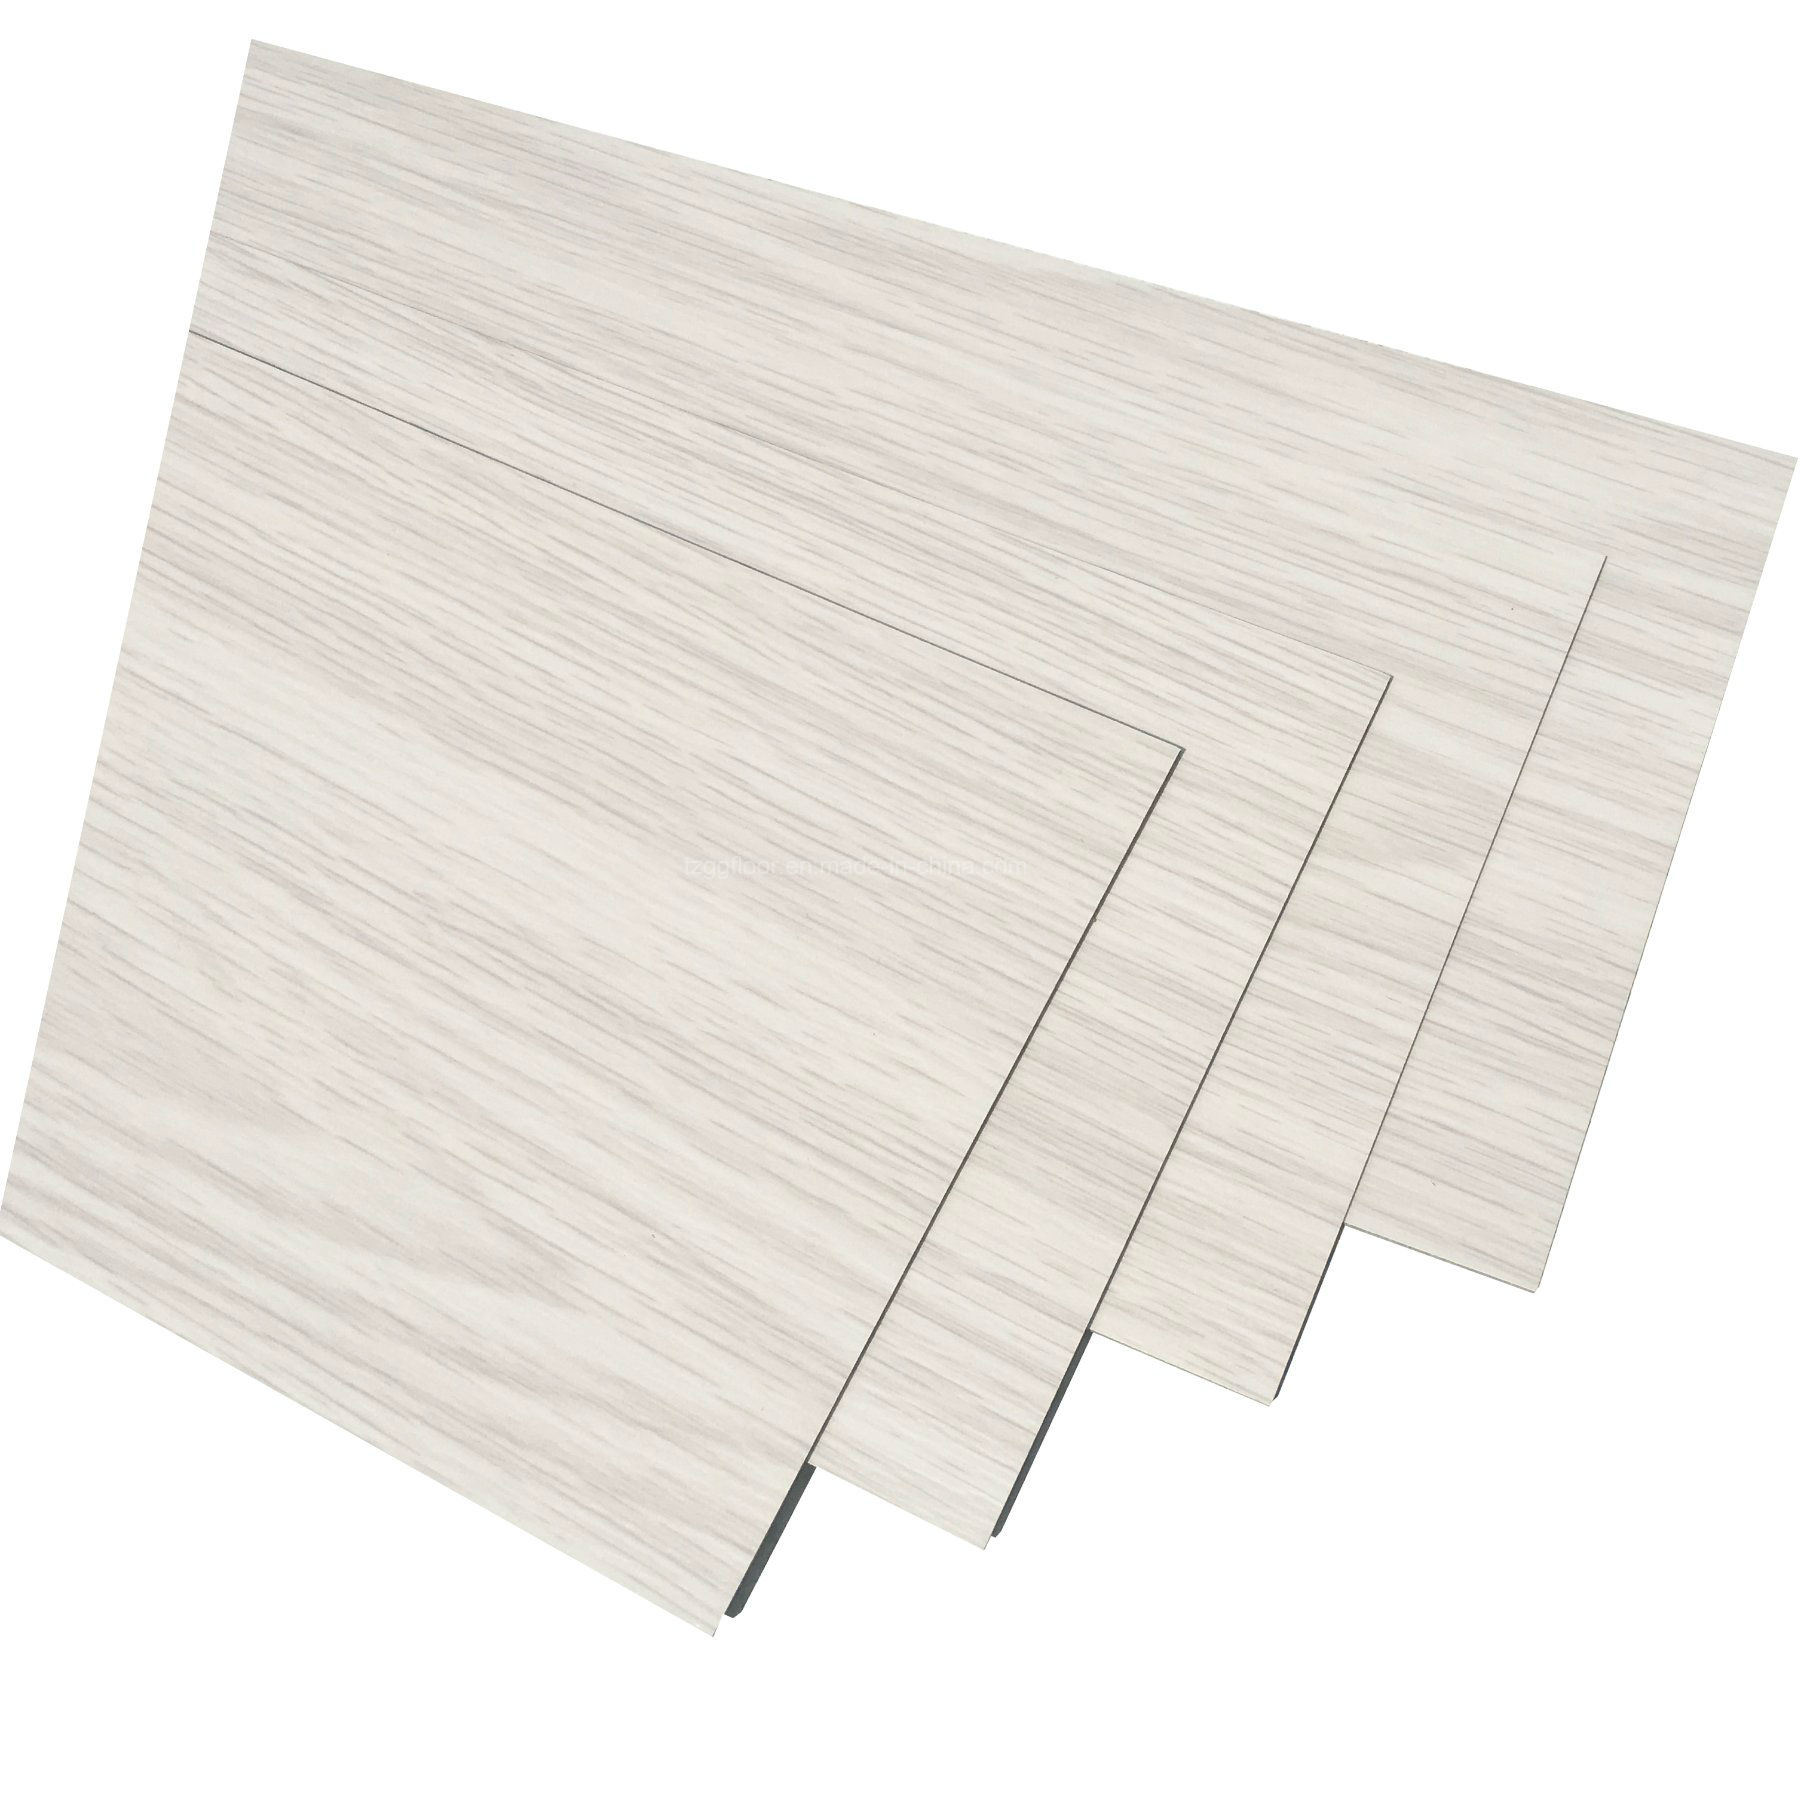 China Vinyl Tile Flooring 2mm Thickness Durable Natural Plank Pvc